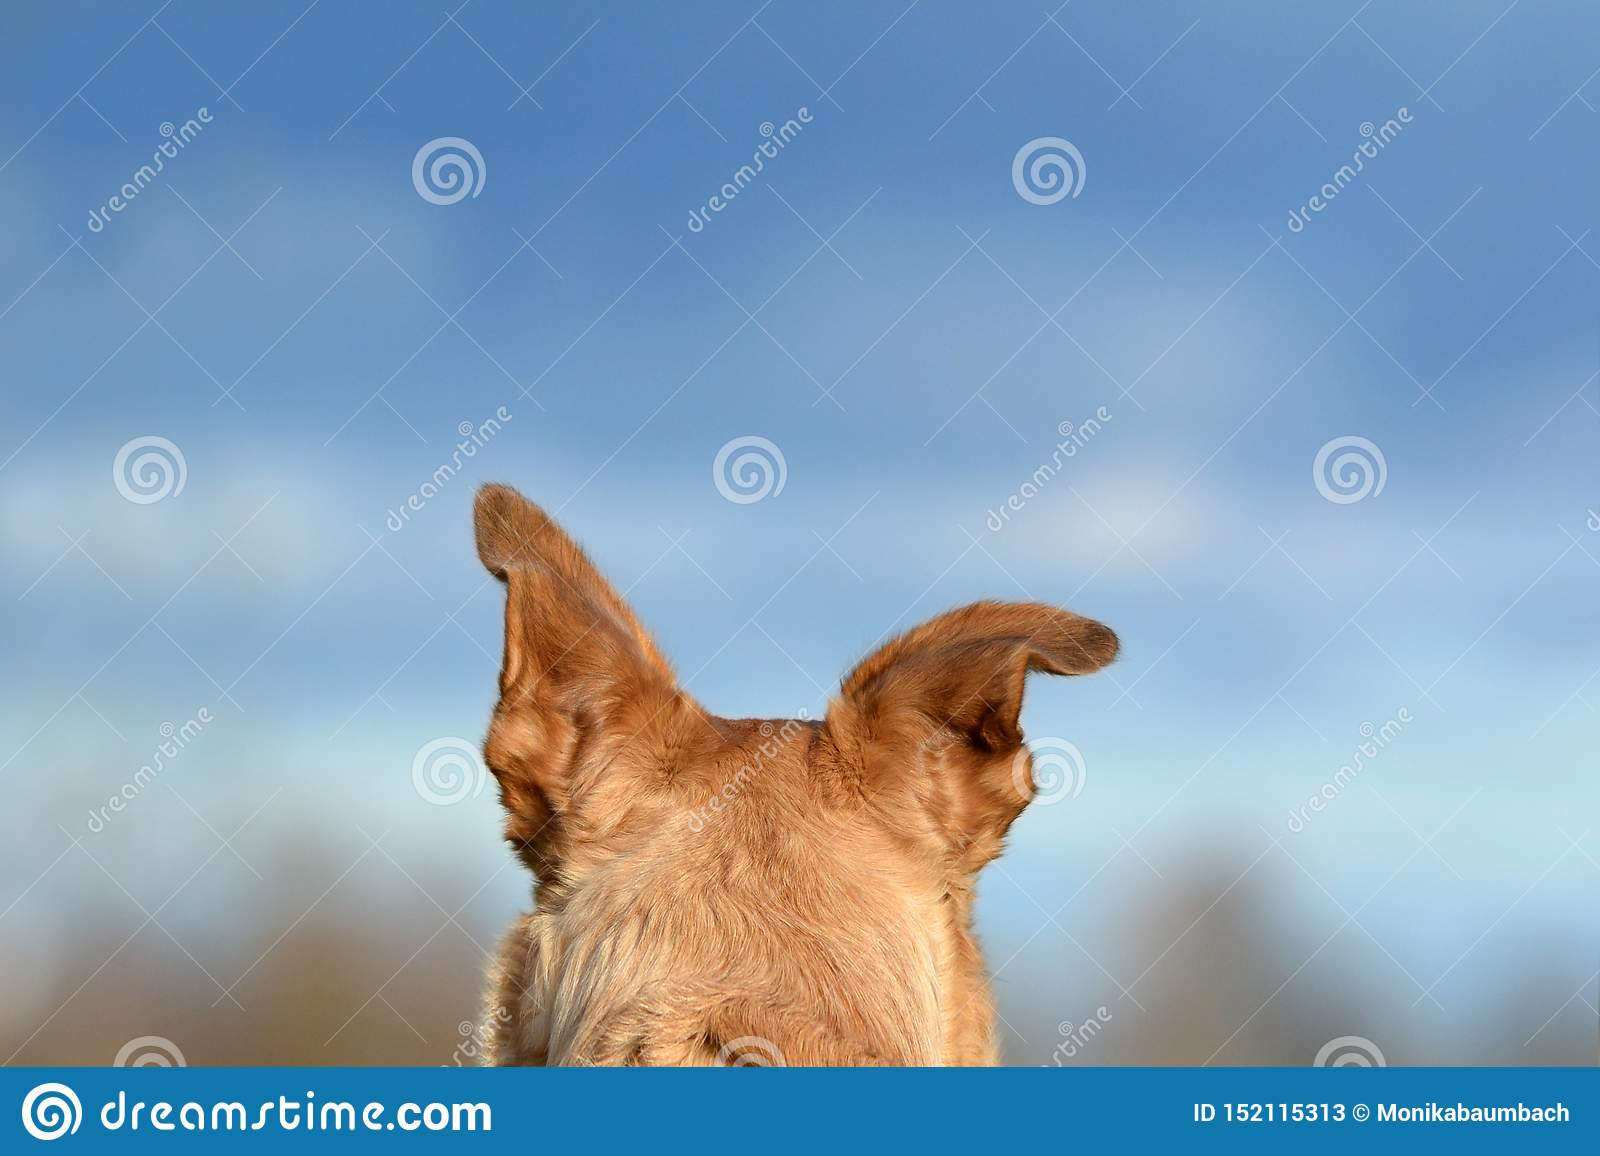 Back of the head with floppy ear of a light brown shepherd mix dog in front of blue sky